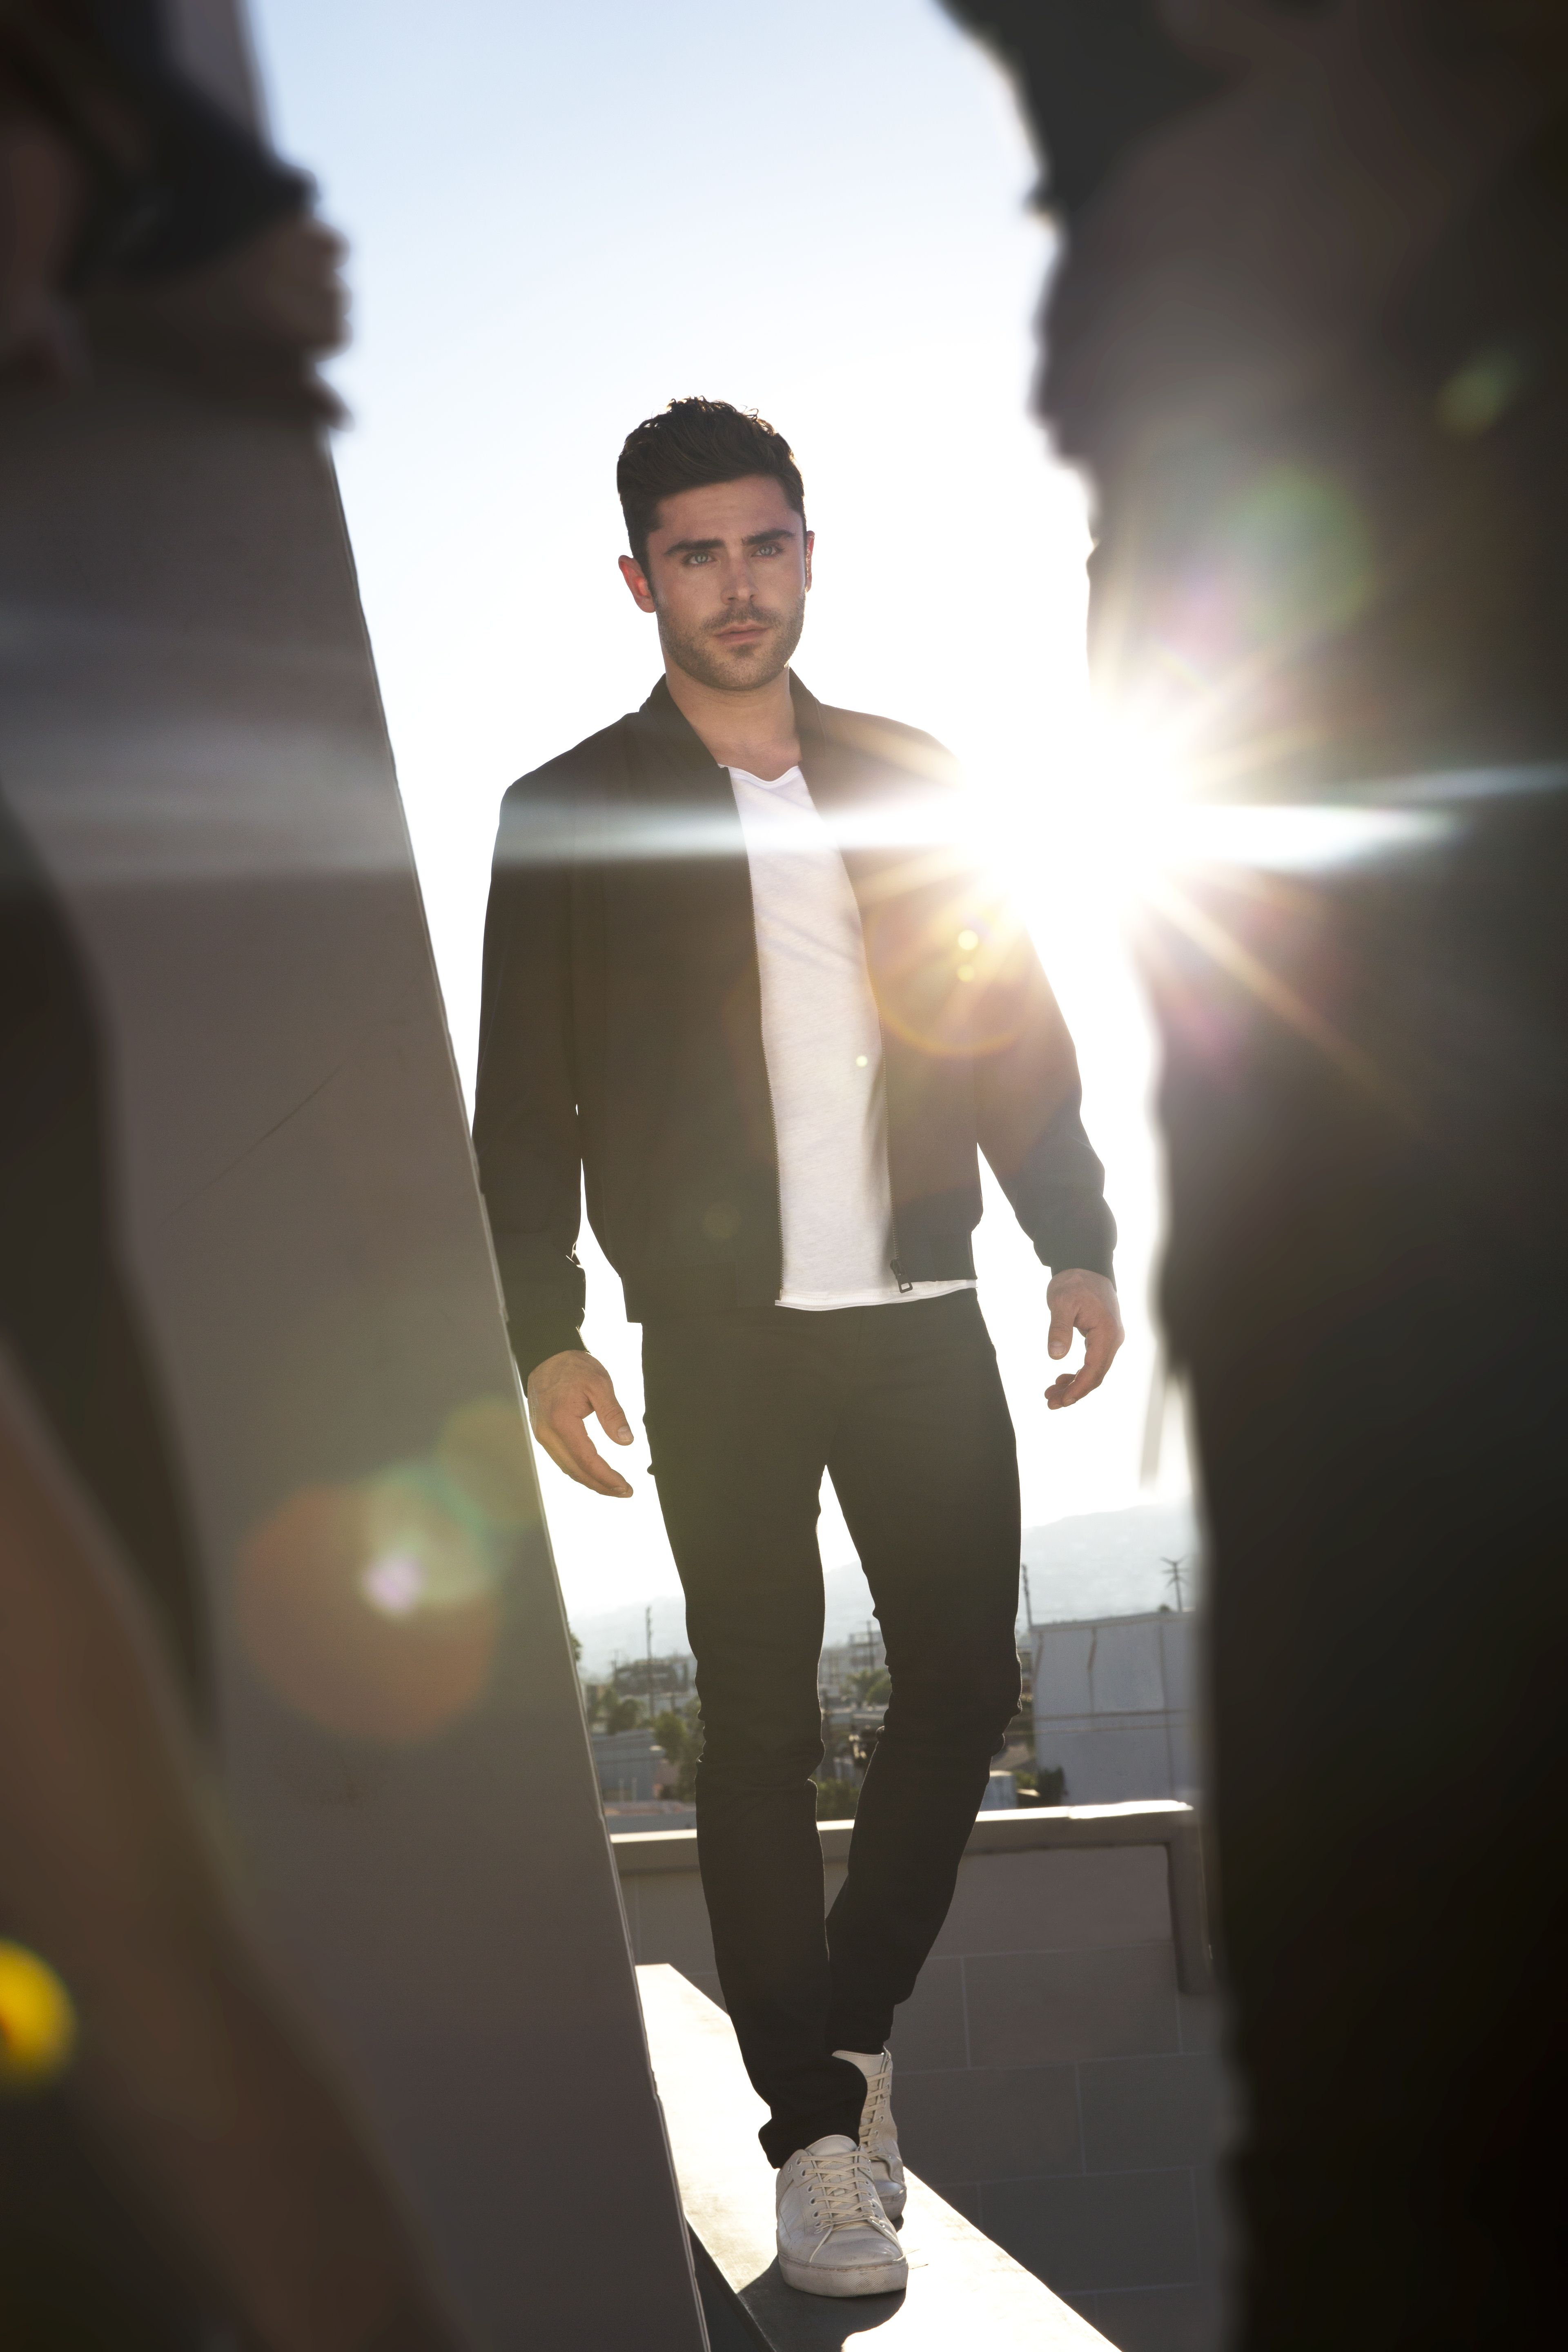 Dare To Take That First Step Zac Efron In The Your Time Is Now Campaign Zac Efron Zac Zach Efron